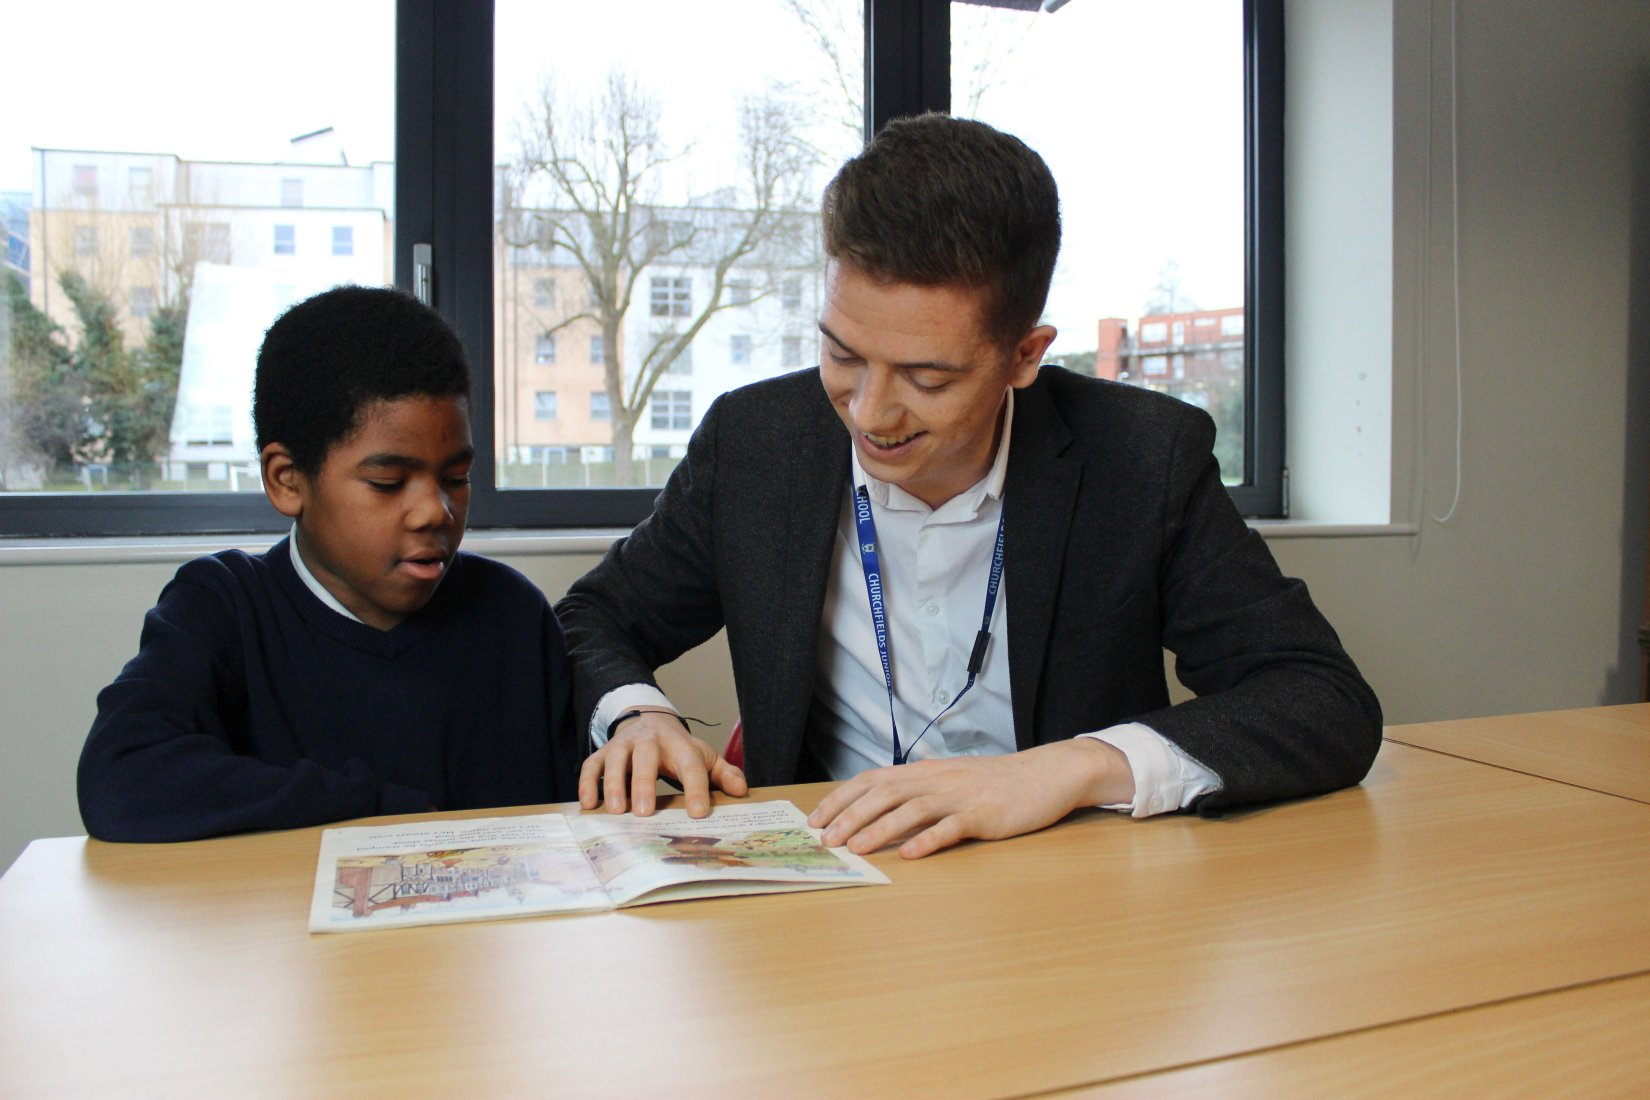 Mr Webster and pupil reading book